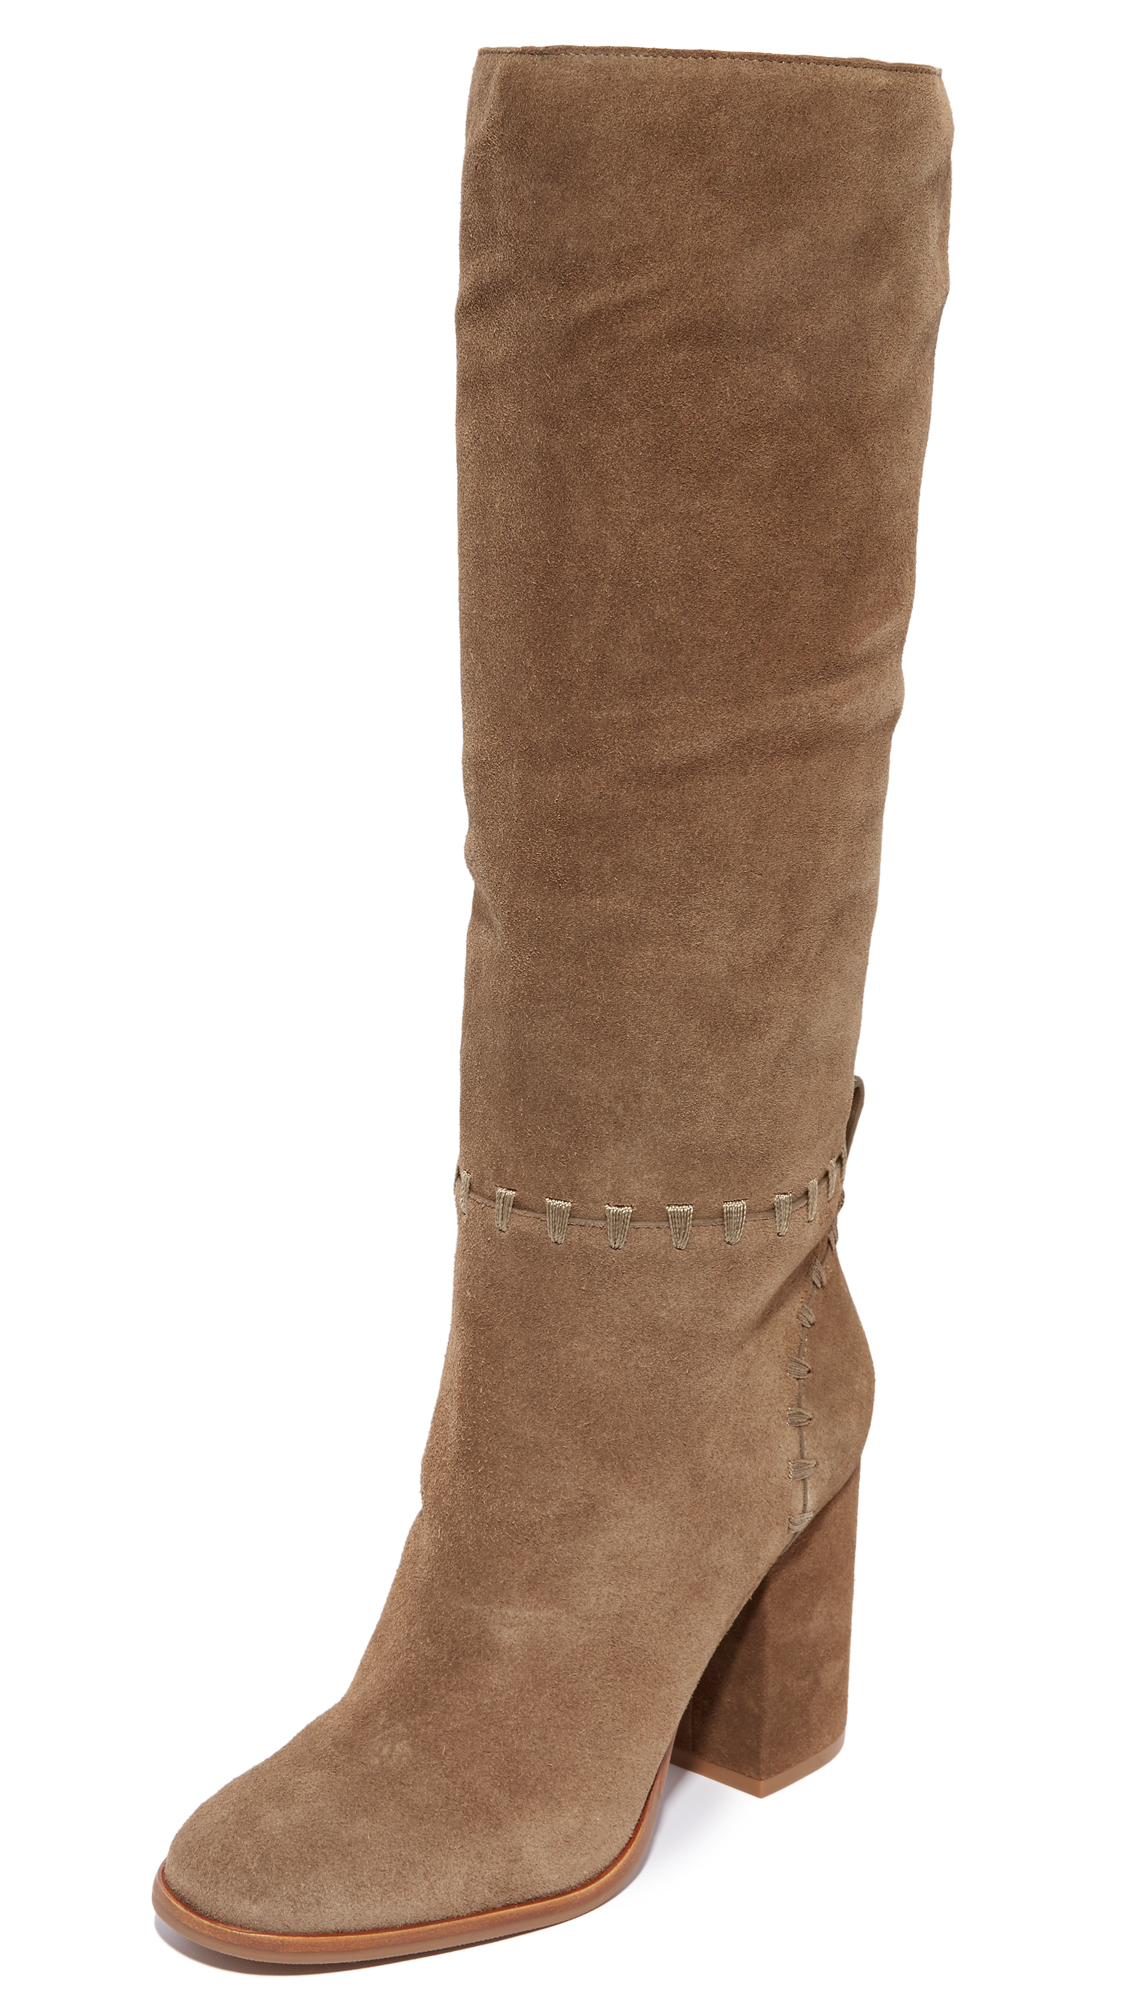 Tory Burch Contraire Boots - River Rock